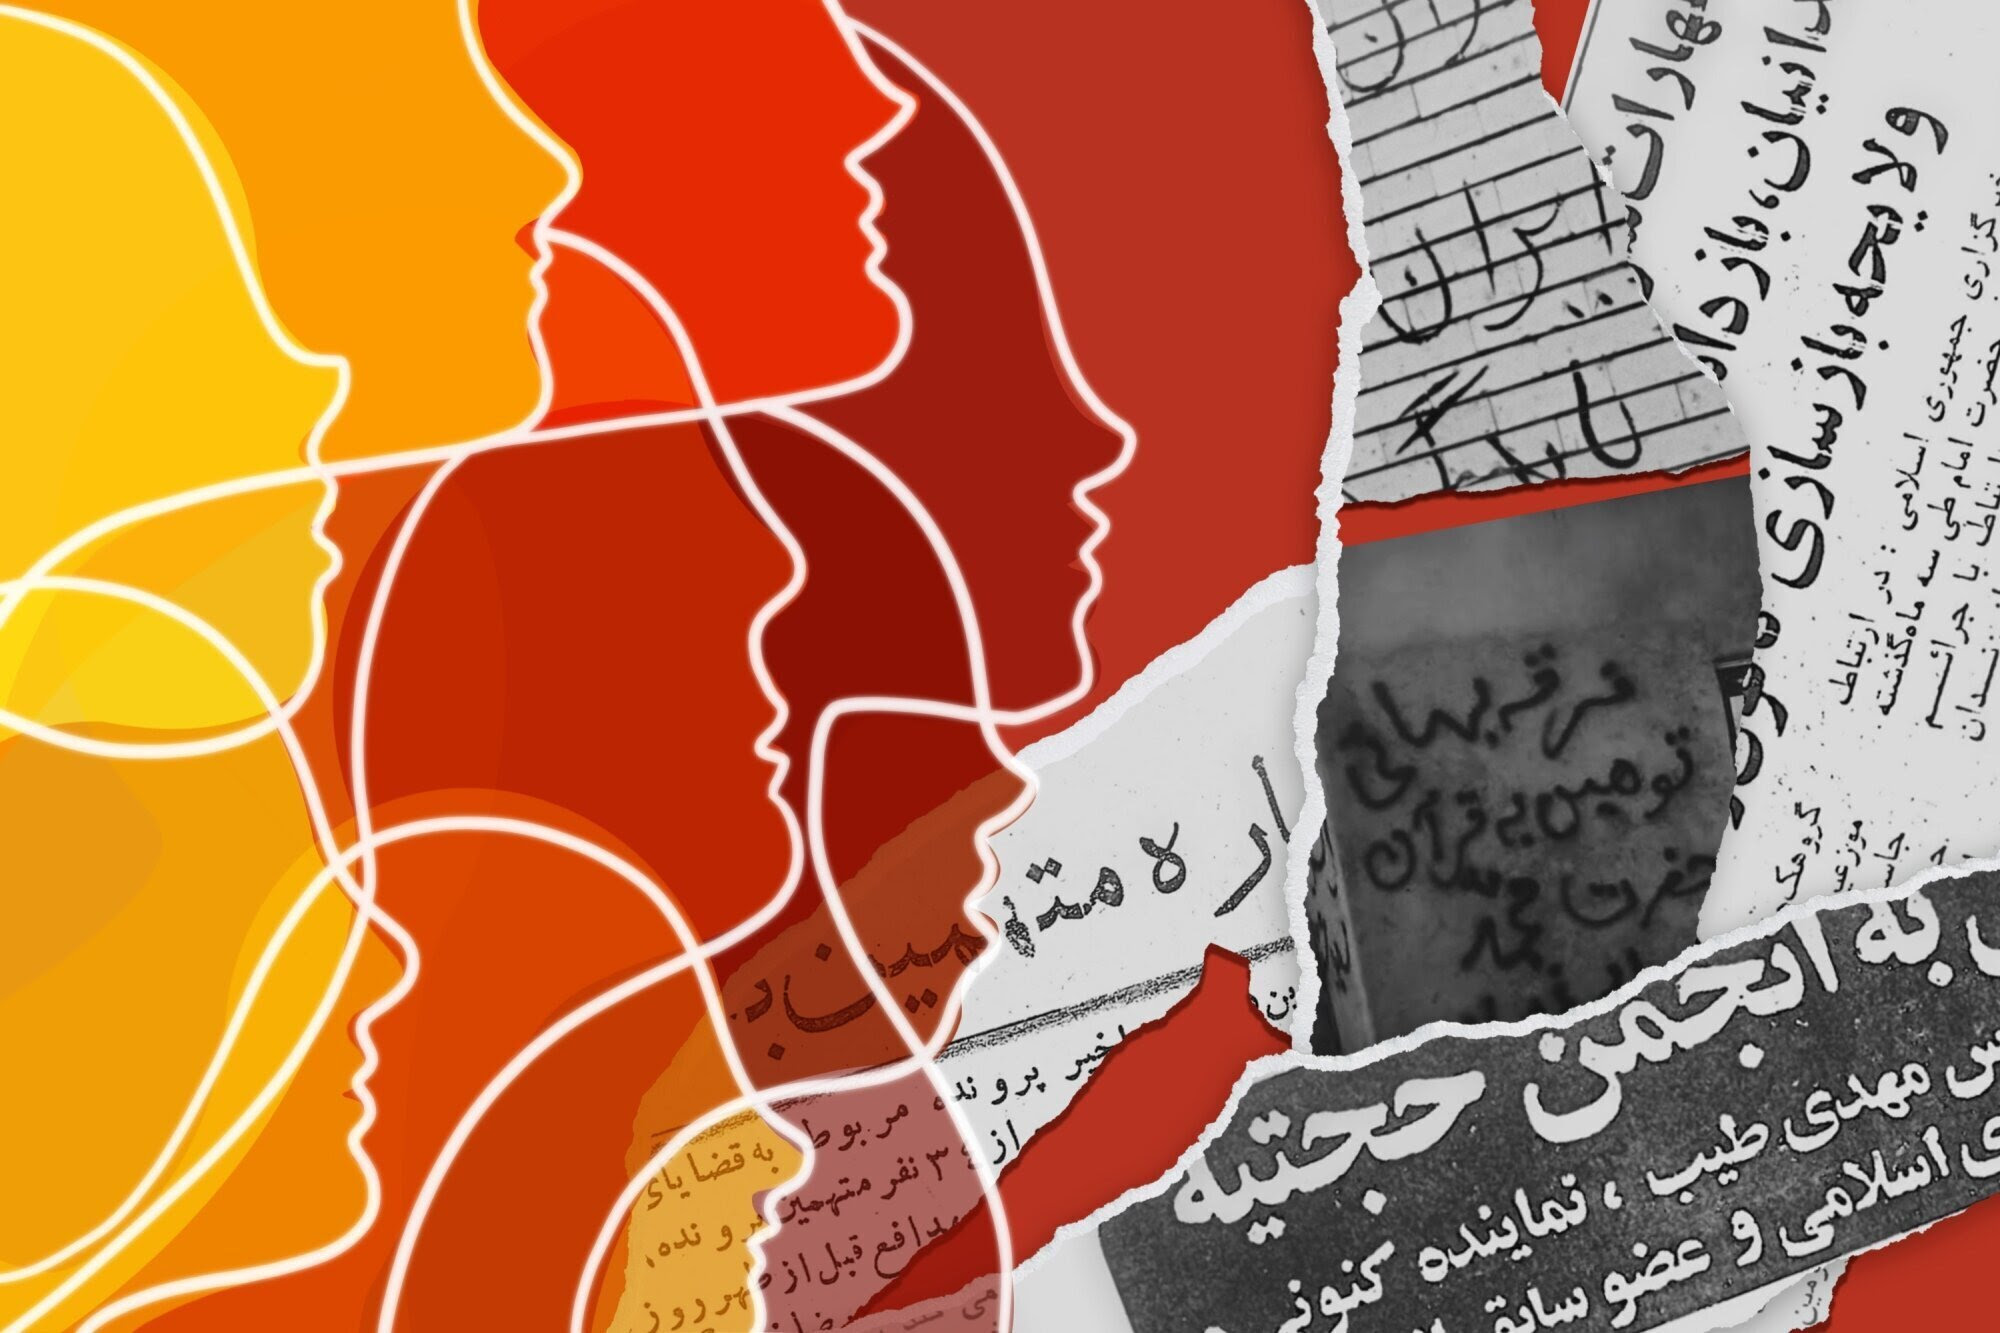 Graphic showing cutouts of samples of Persian text and graffiti on the right, with the red and yellow silhouettes of several faces on the left observing with concern.